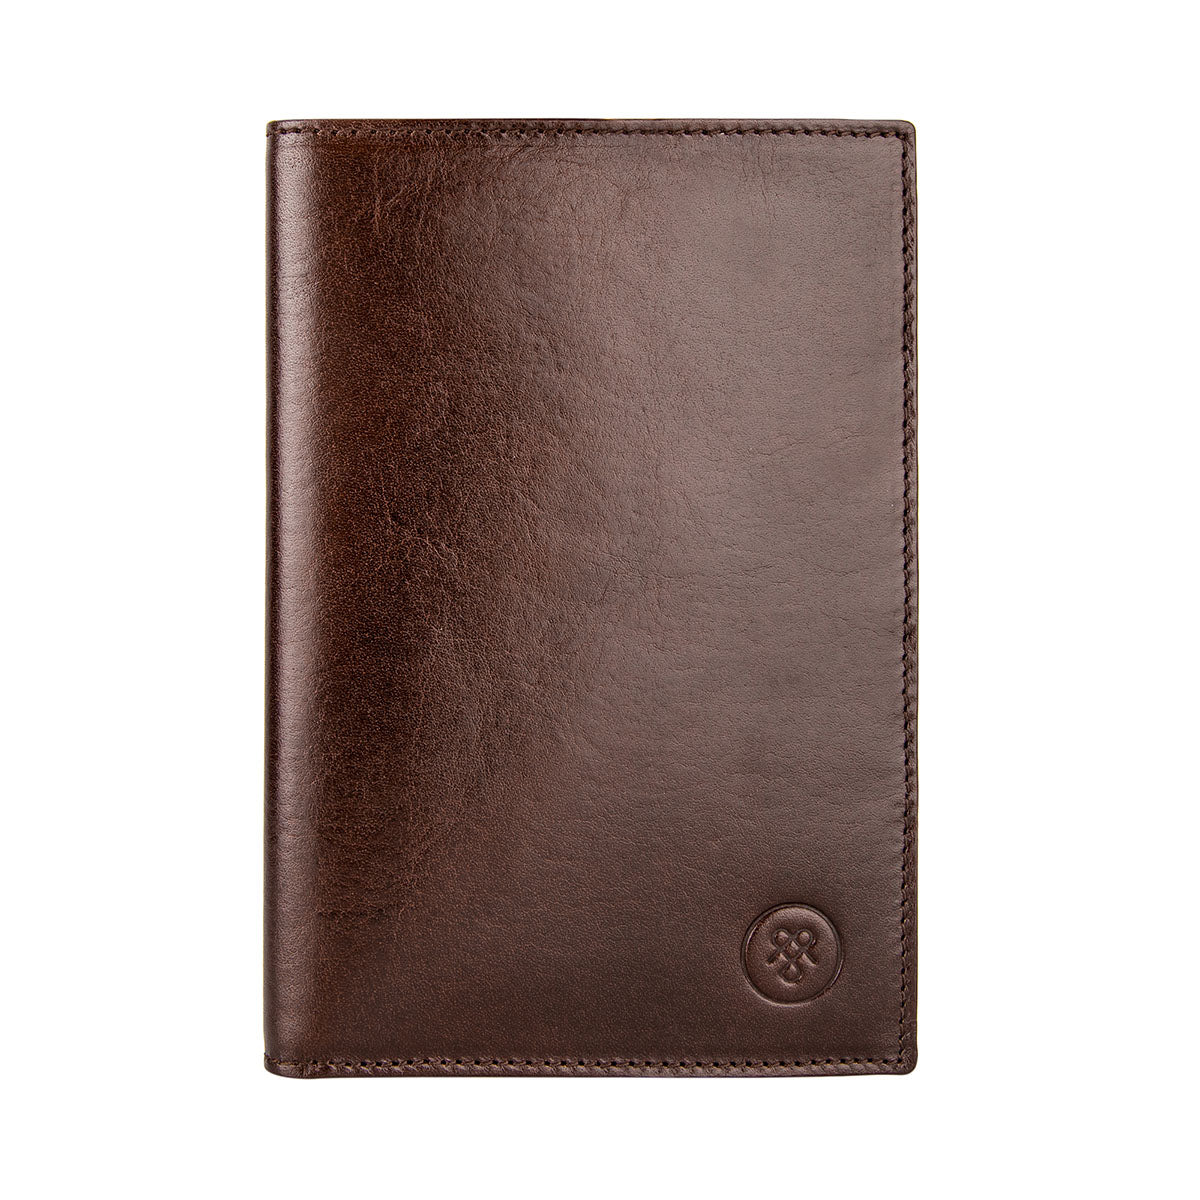 Image 1 of the 'Pianillo' Dark Chocolate Veg-Tanned Leather Breast Wallet